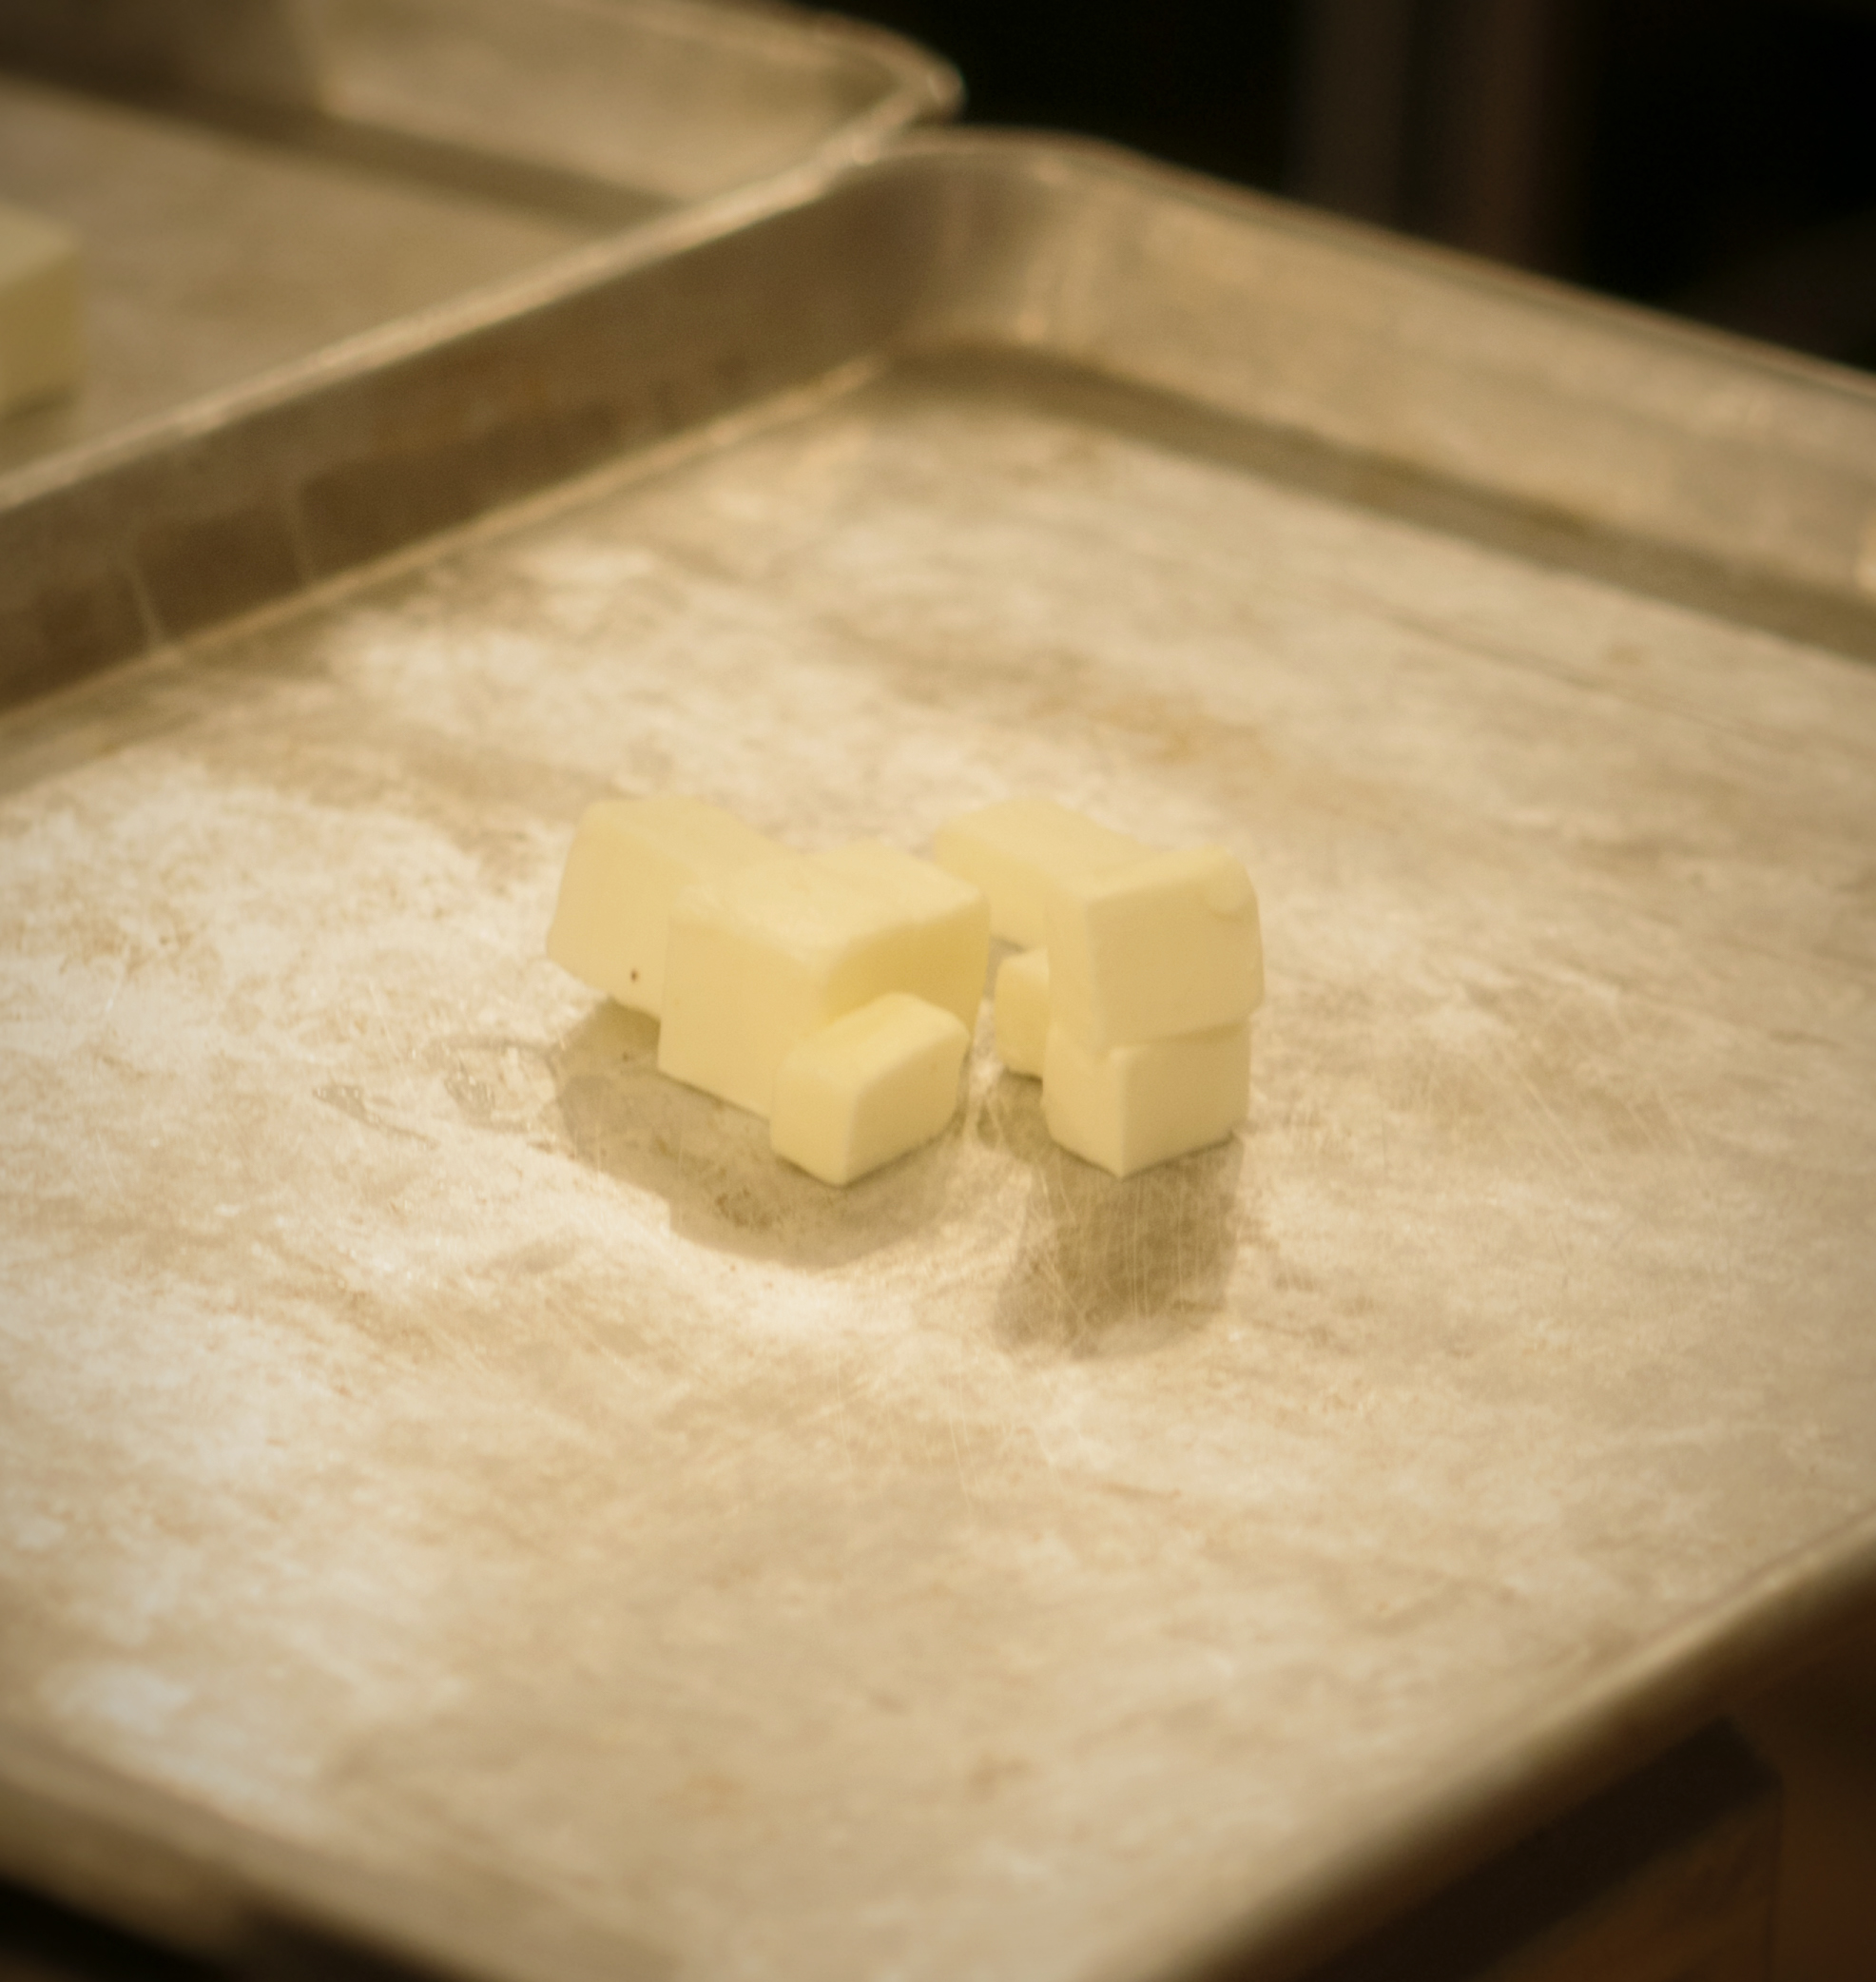 Preserving Place - Melting Butter